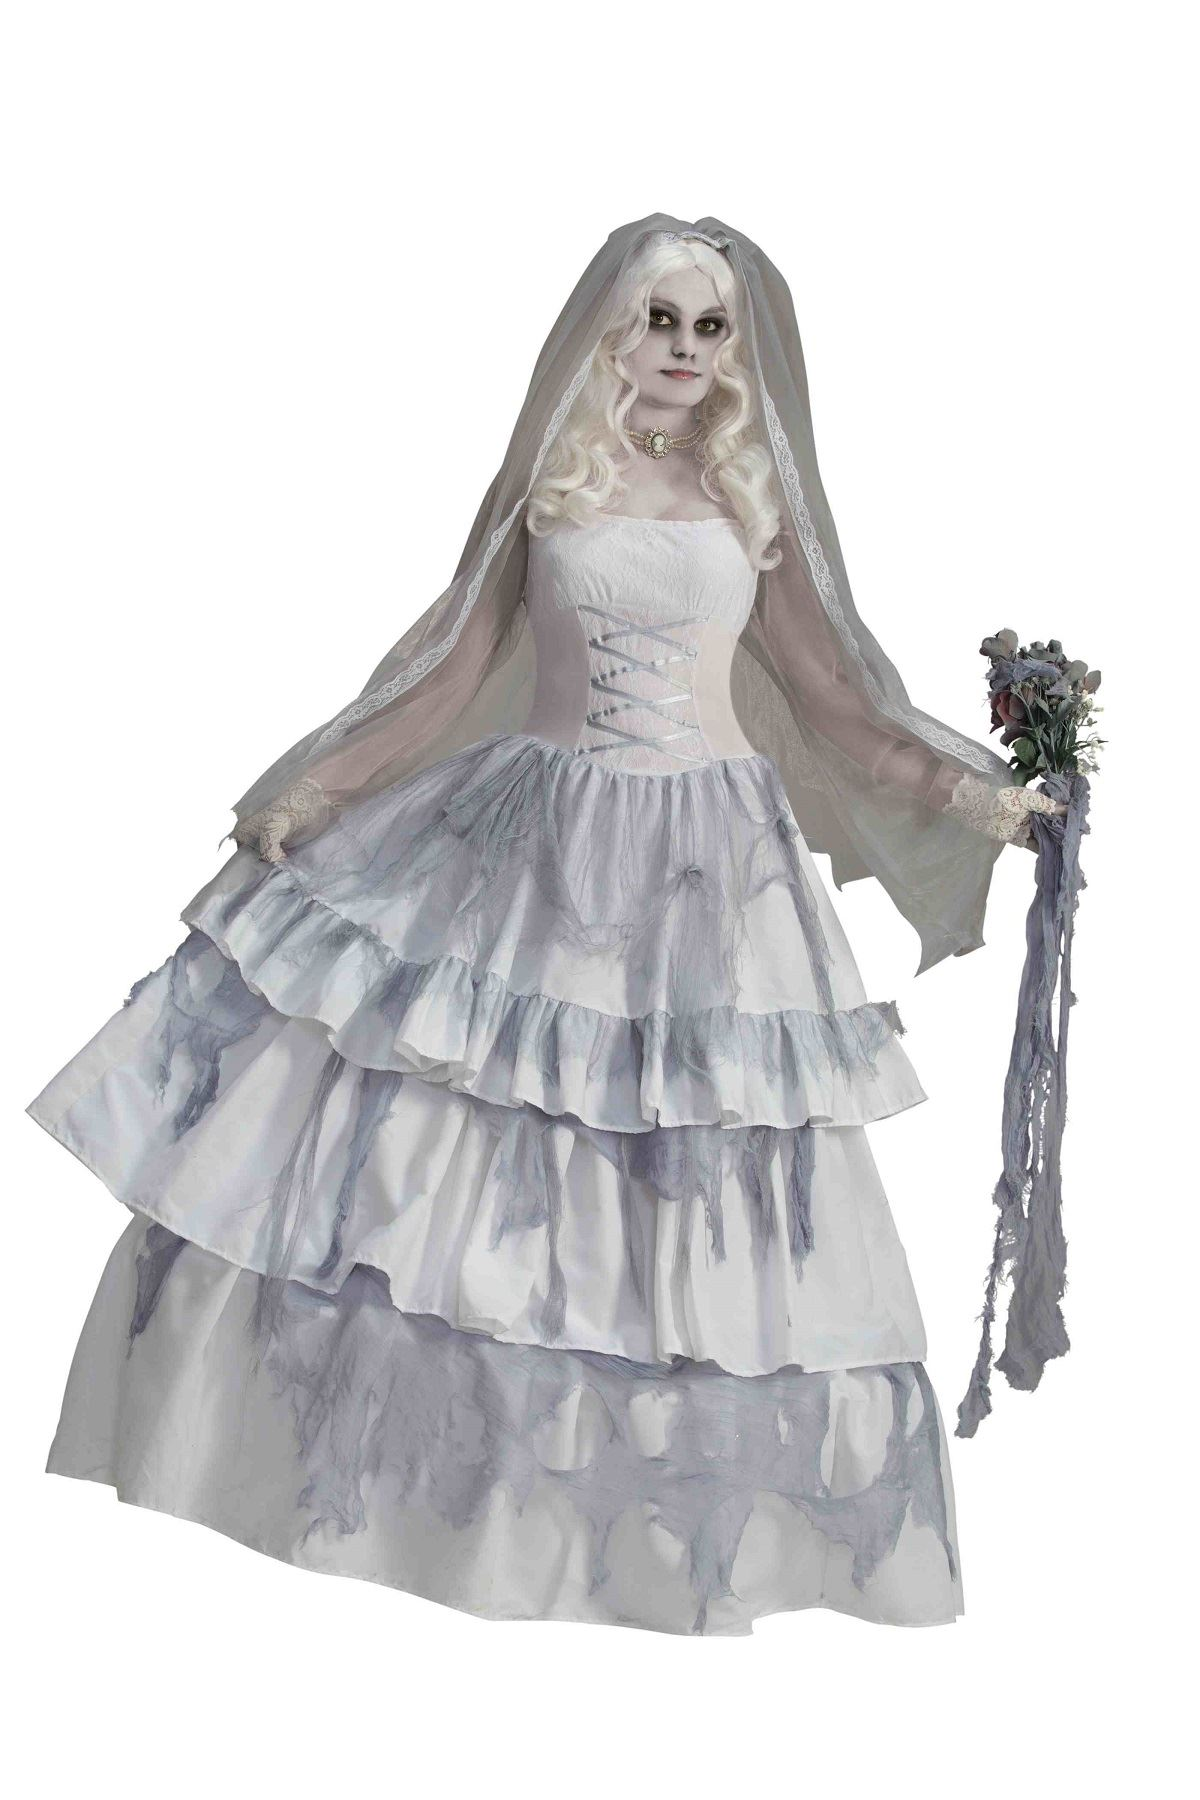 Spirit Halloween is a seasonal retailer chain specializing in Halloween costumes, accessories, and party props, from cute children's attire to hot adult get-ups. It is notable for its life-size animatronic displays/5(K).